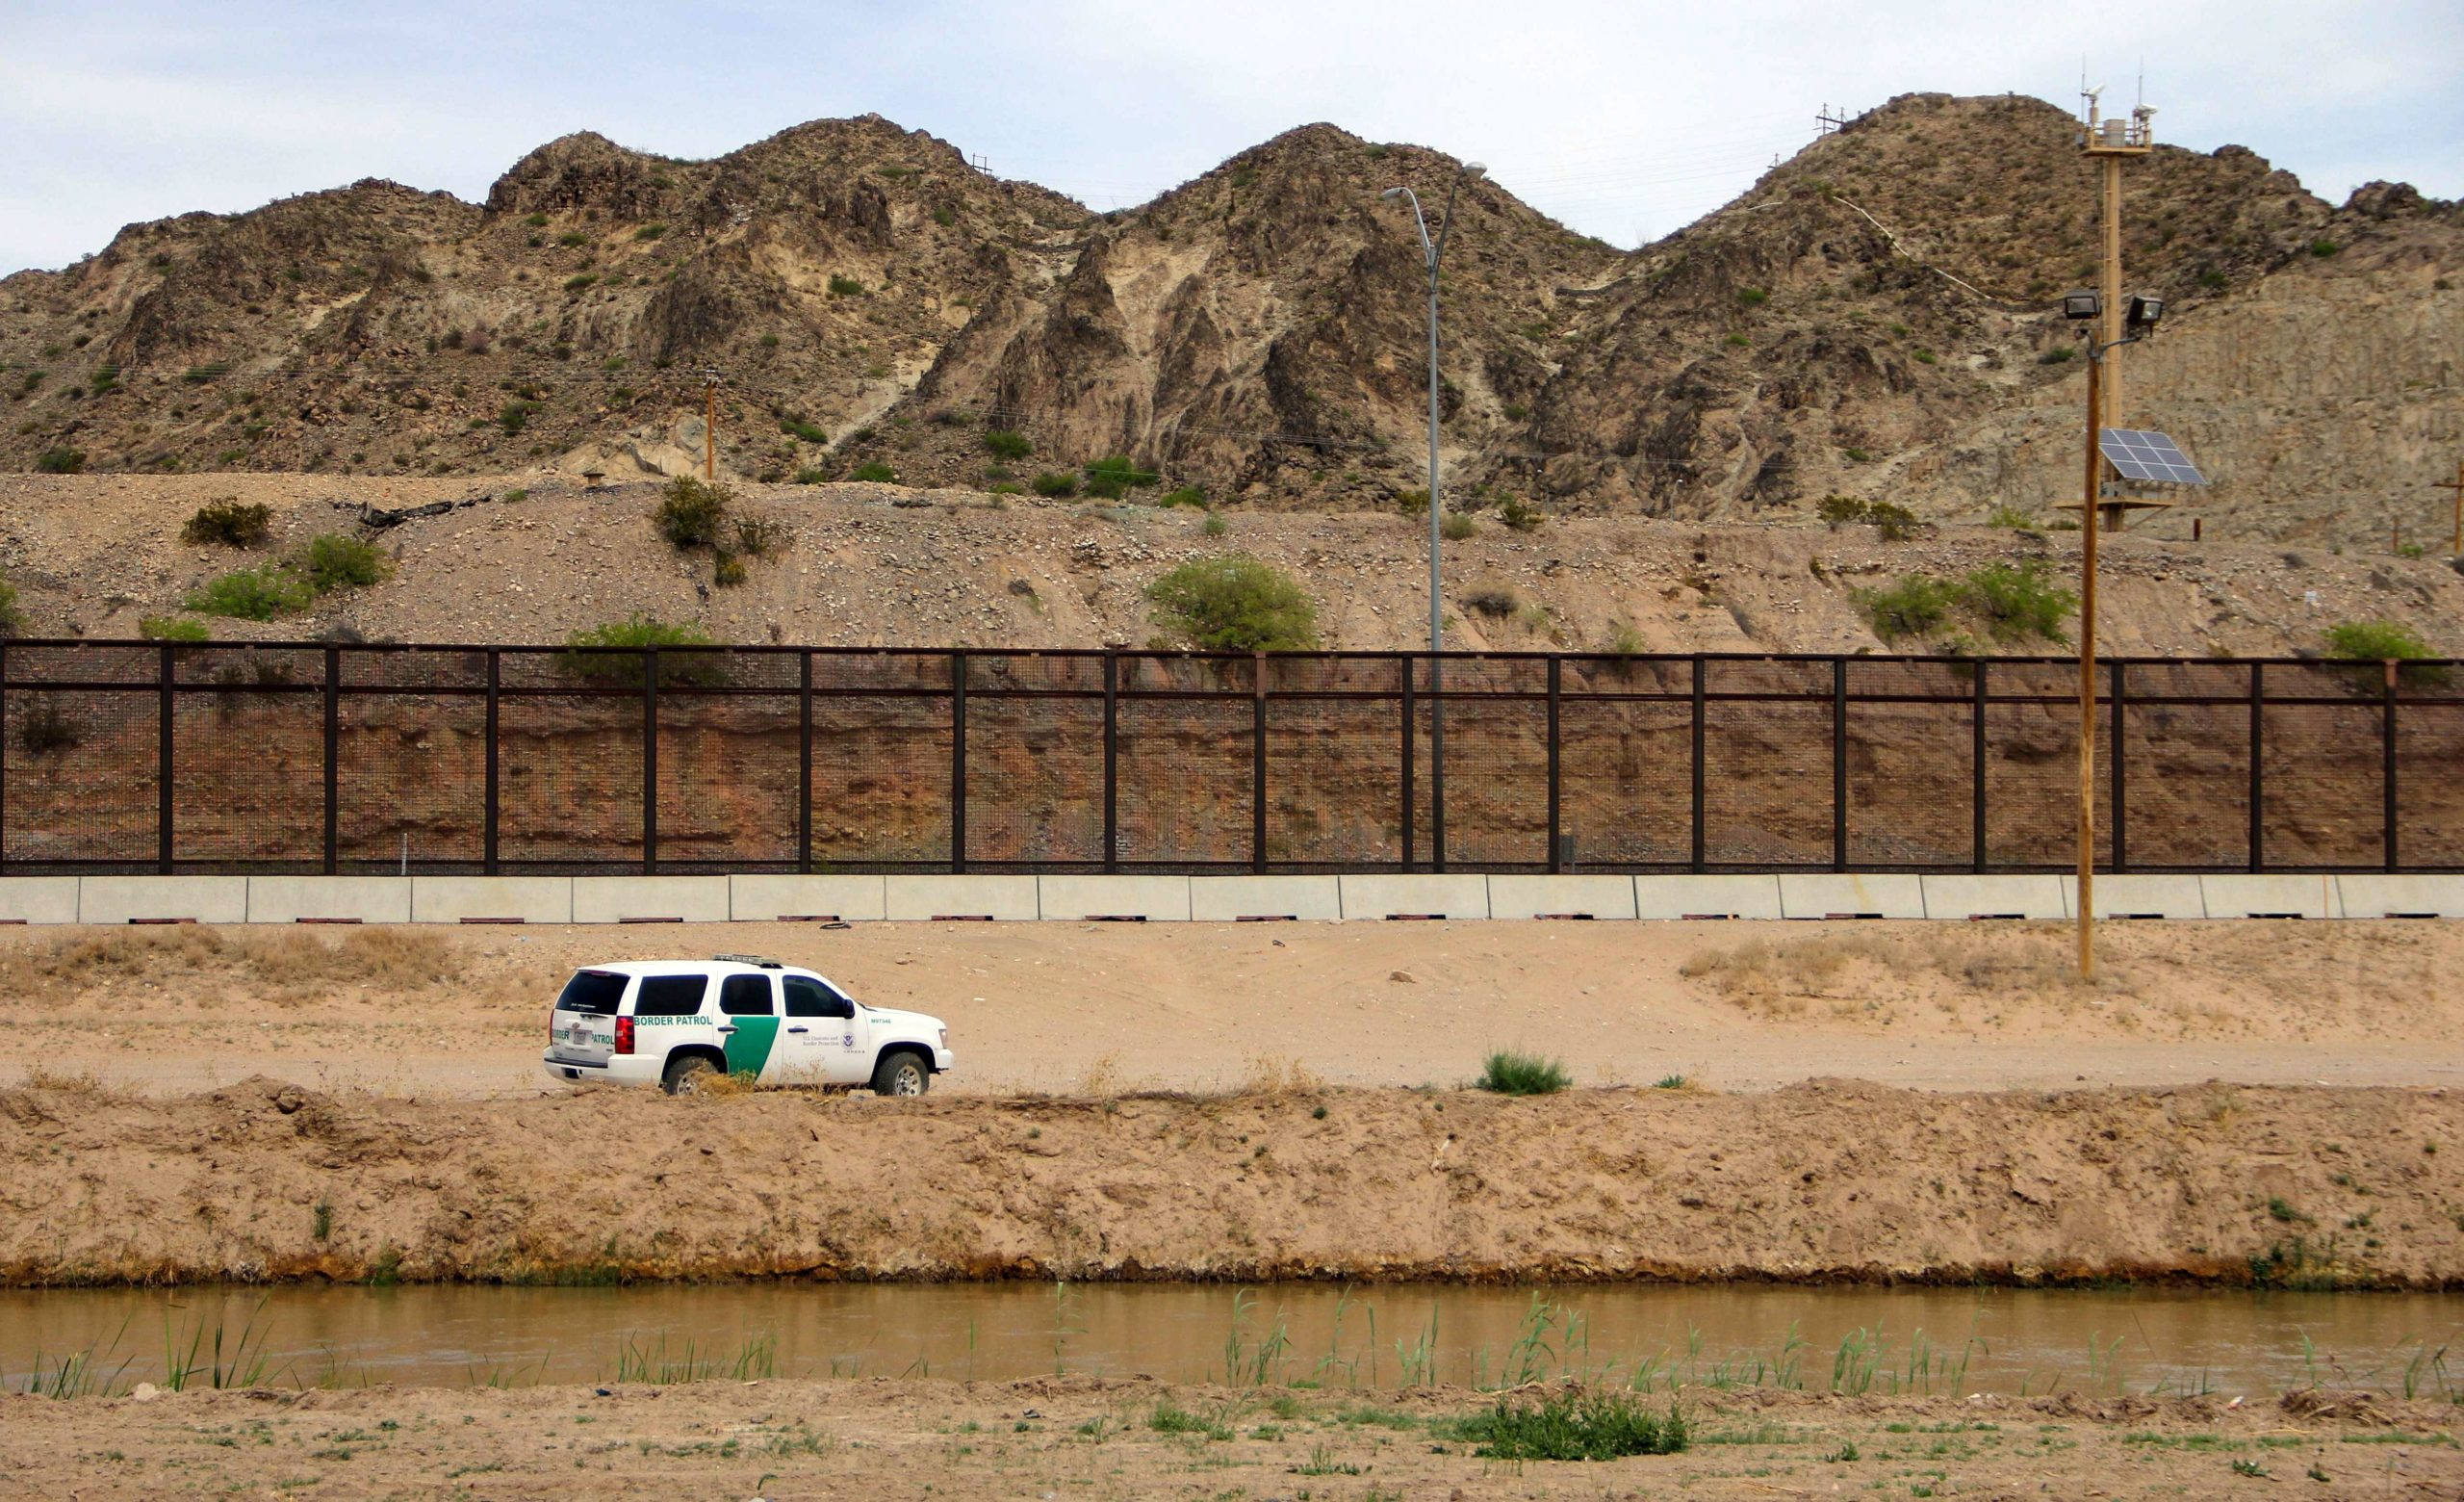 A US Border Patrol is seen from Mexico while patrolling along the border line between the cities of El Paso, Texas, in the United States, and Ciudad Juarez, Chihuahua state, Mexico on April 7, 2018. The US states of Texas and Arizona on Friday announced plans to send National Guard troops to the southern border with Mexico after President Donald Trump ordered a thousands-strong deployment to combat drug trafficking and illegal immigration. / AFP PHOTO / HERIKA MARTINEZ (Photo credit should read HERIKA MARTINEZ/AFP via Getty Images)